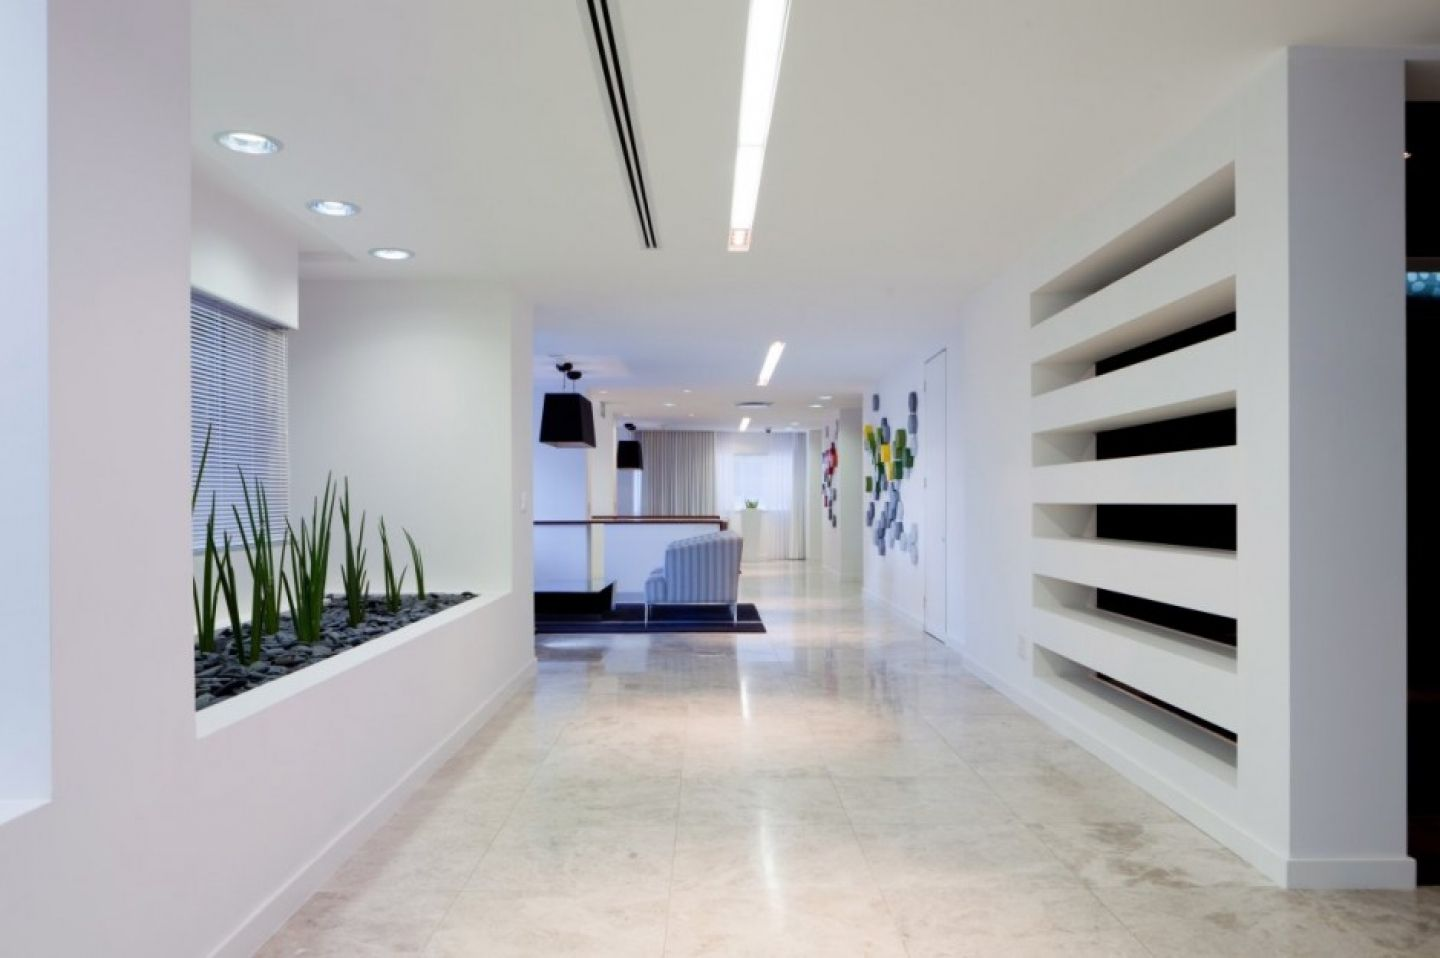 Everlasting white paint decor pinterest interior walls office interiors and white paints